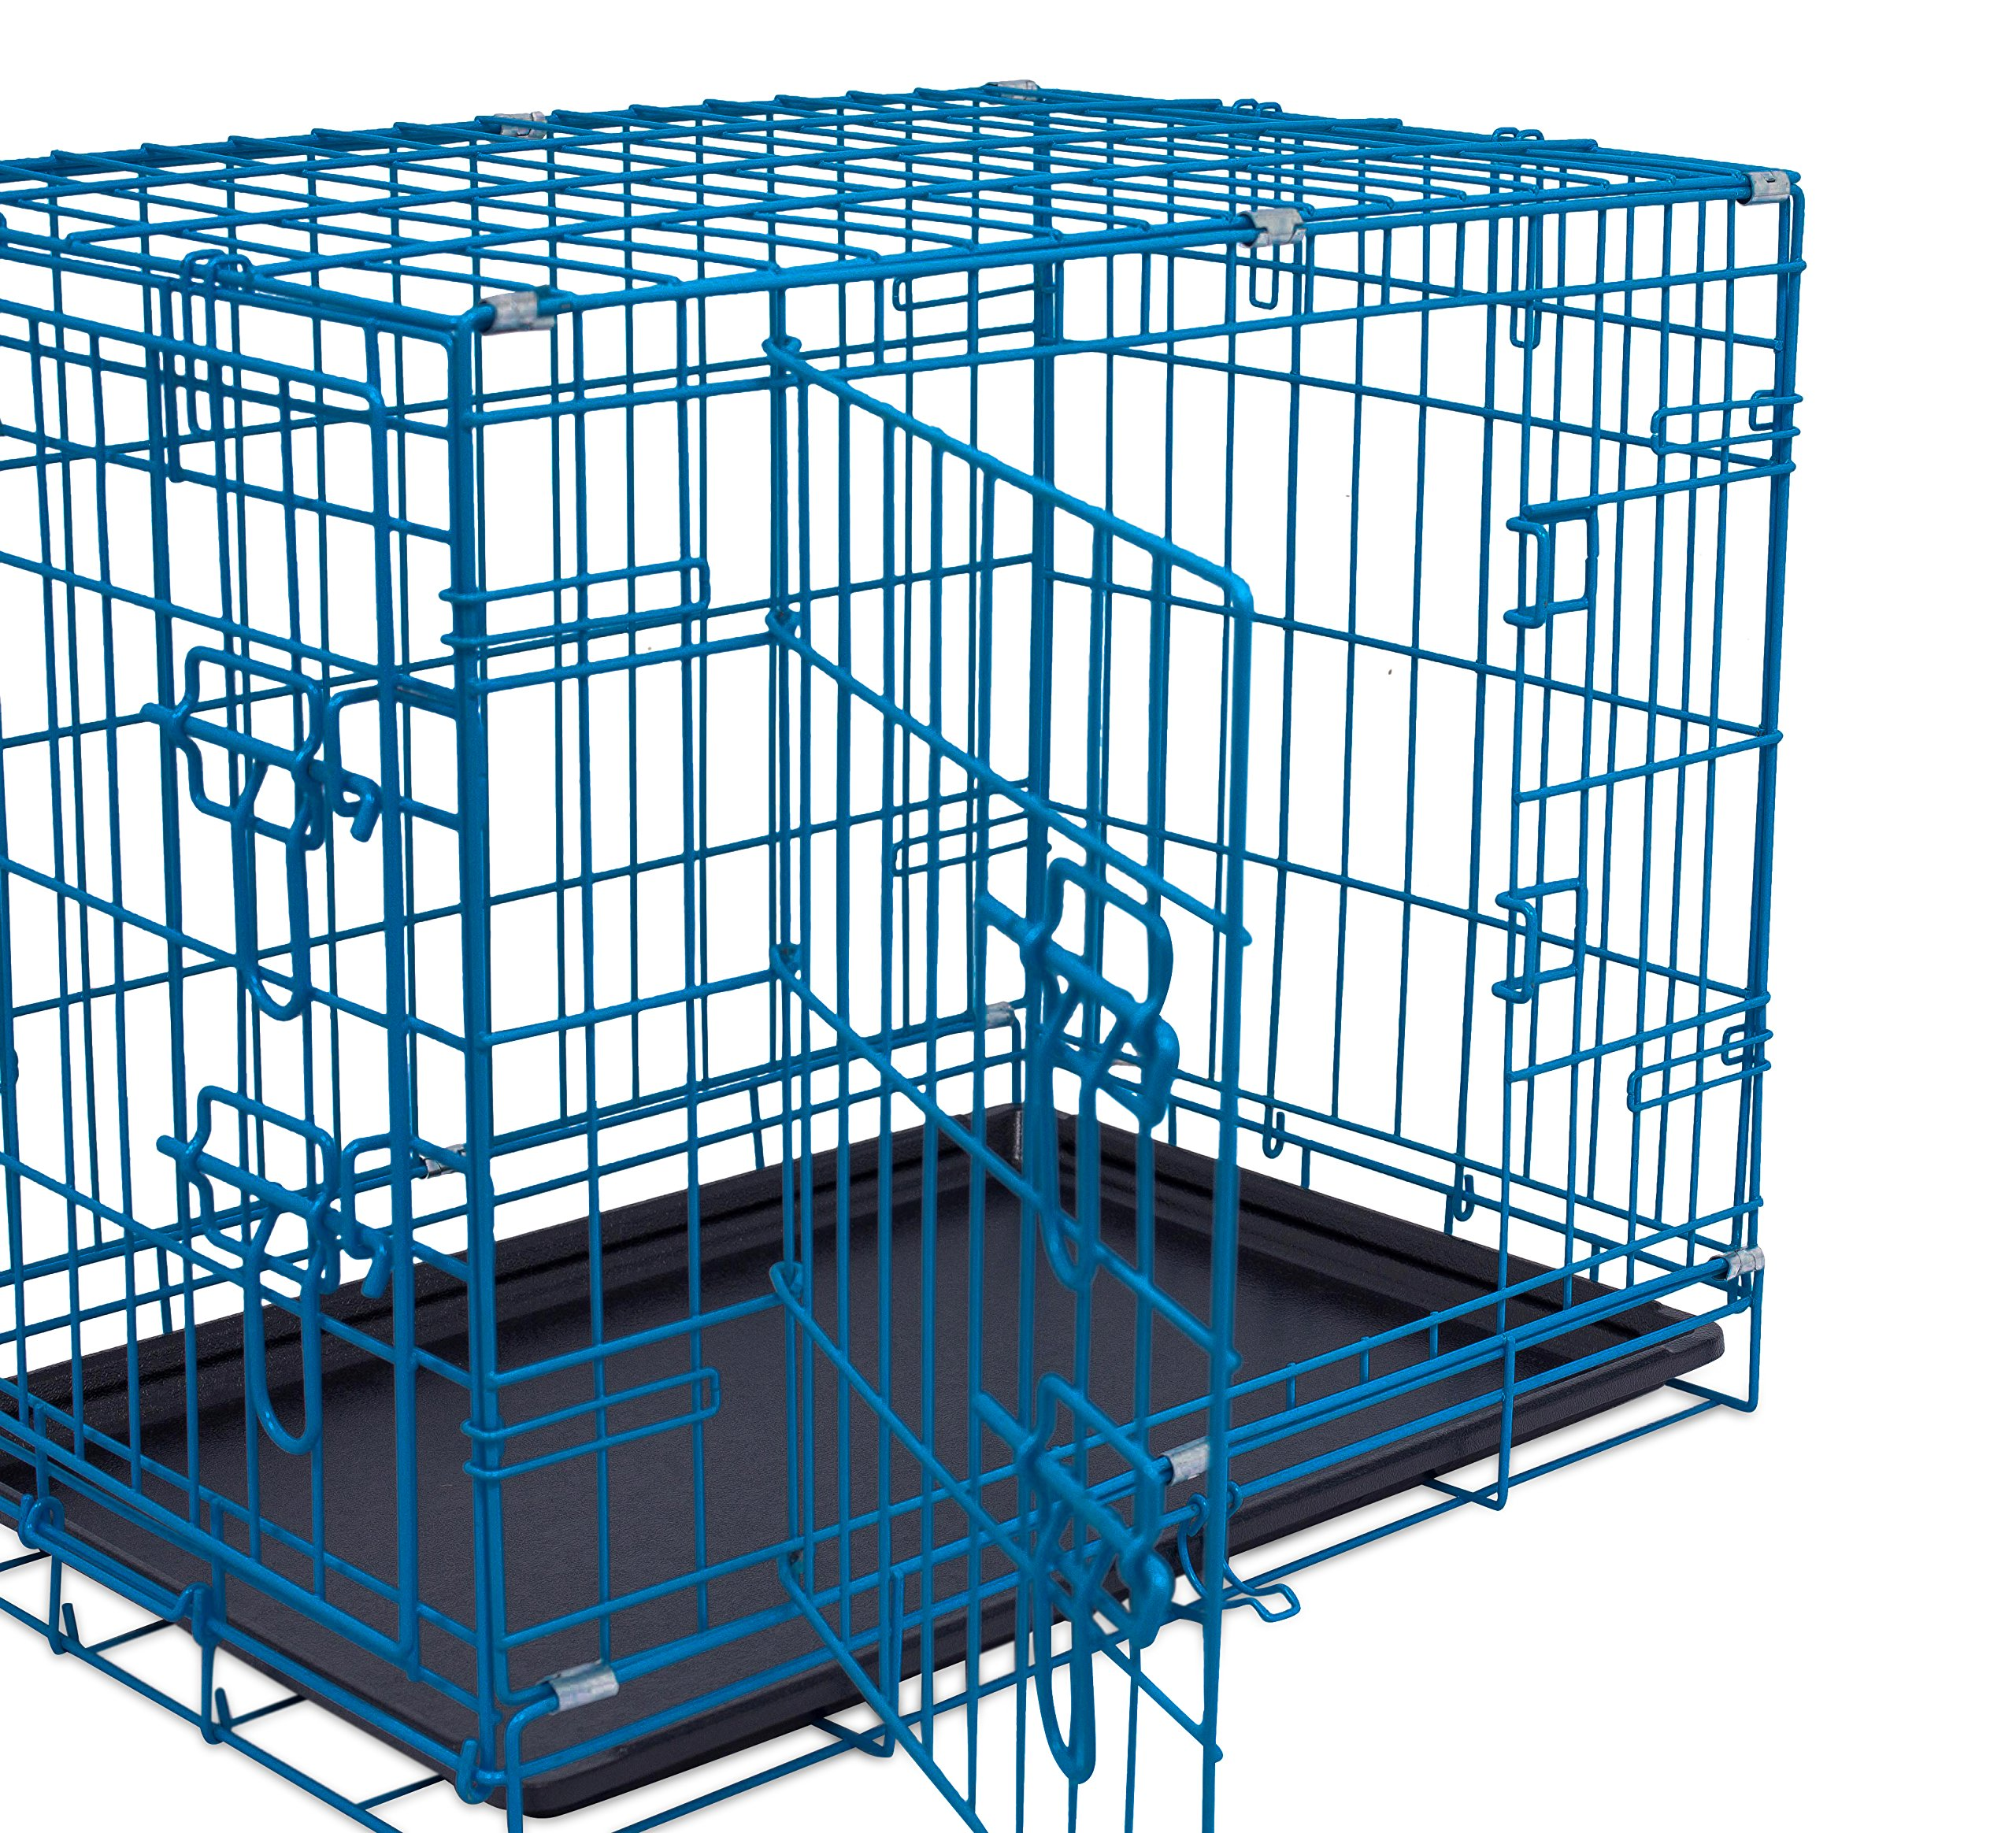 Internet's Best Double Door Steel Crates Collapsible and Foldable Wire Dog Kennel, 24 Inch (Small), Blue by Internet's Best (Image #6)